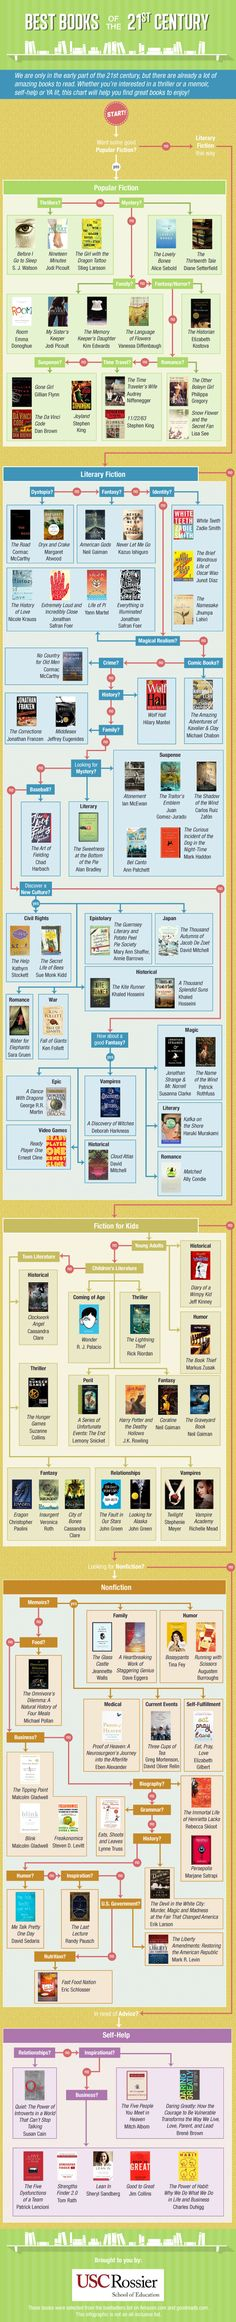 Best Books Of The 21st Century   #infographic #Books #Reading